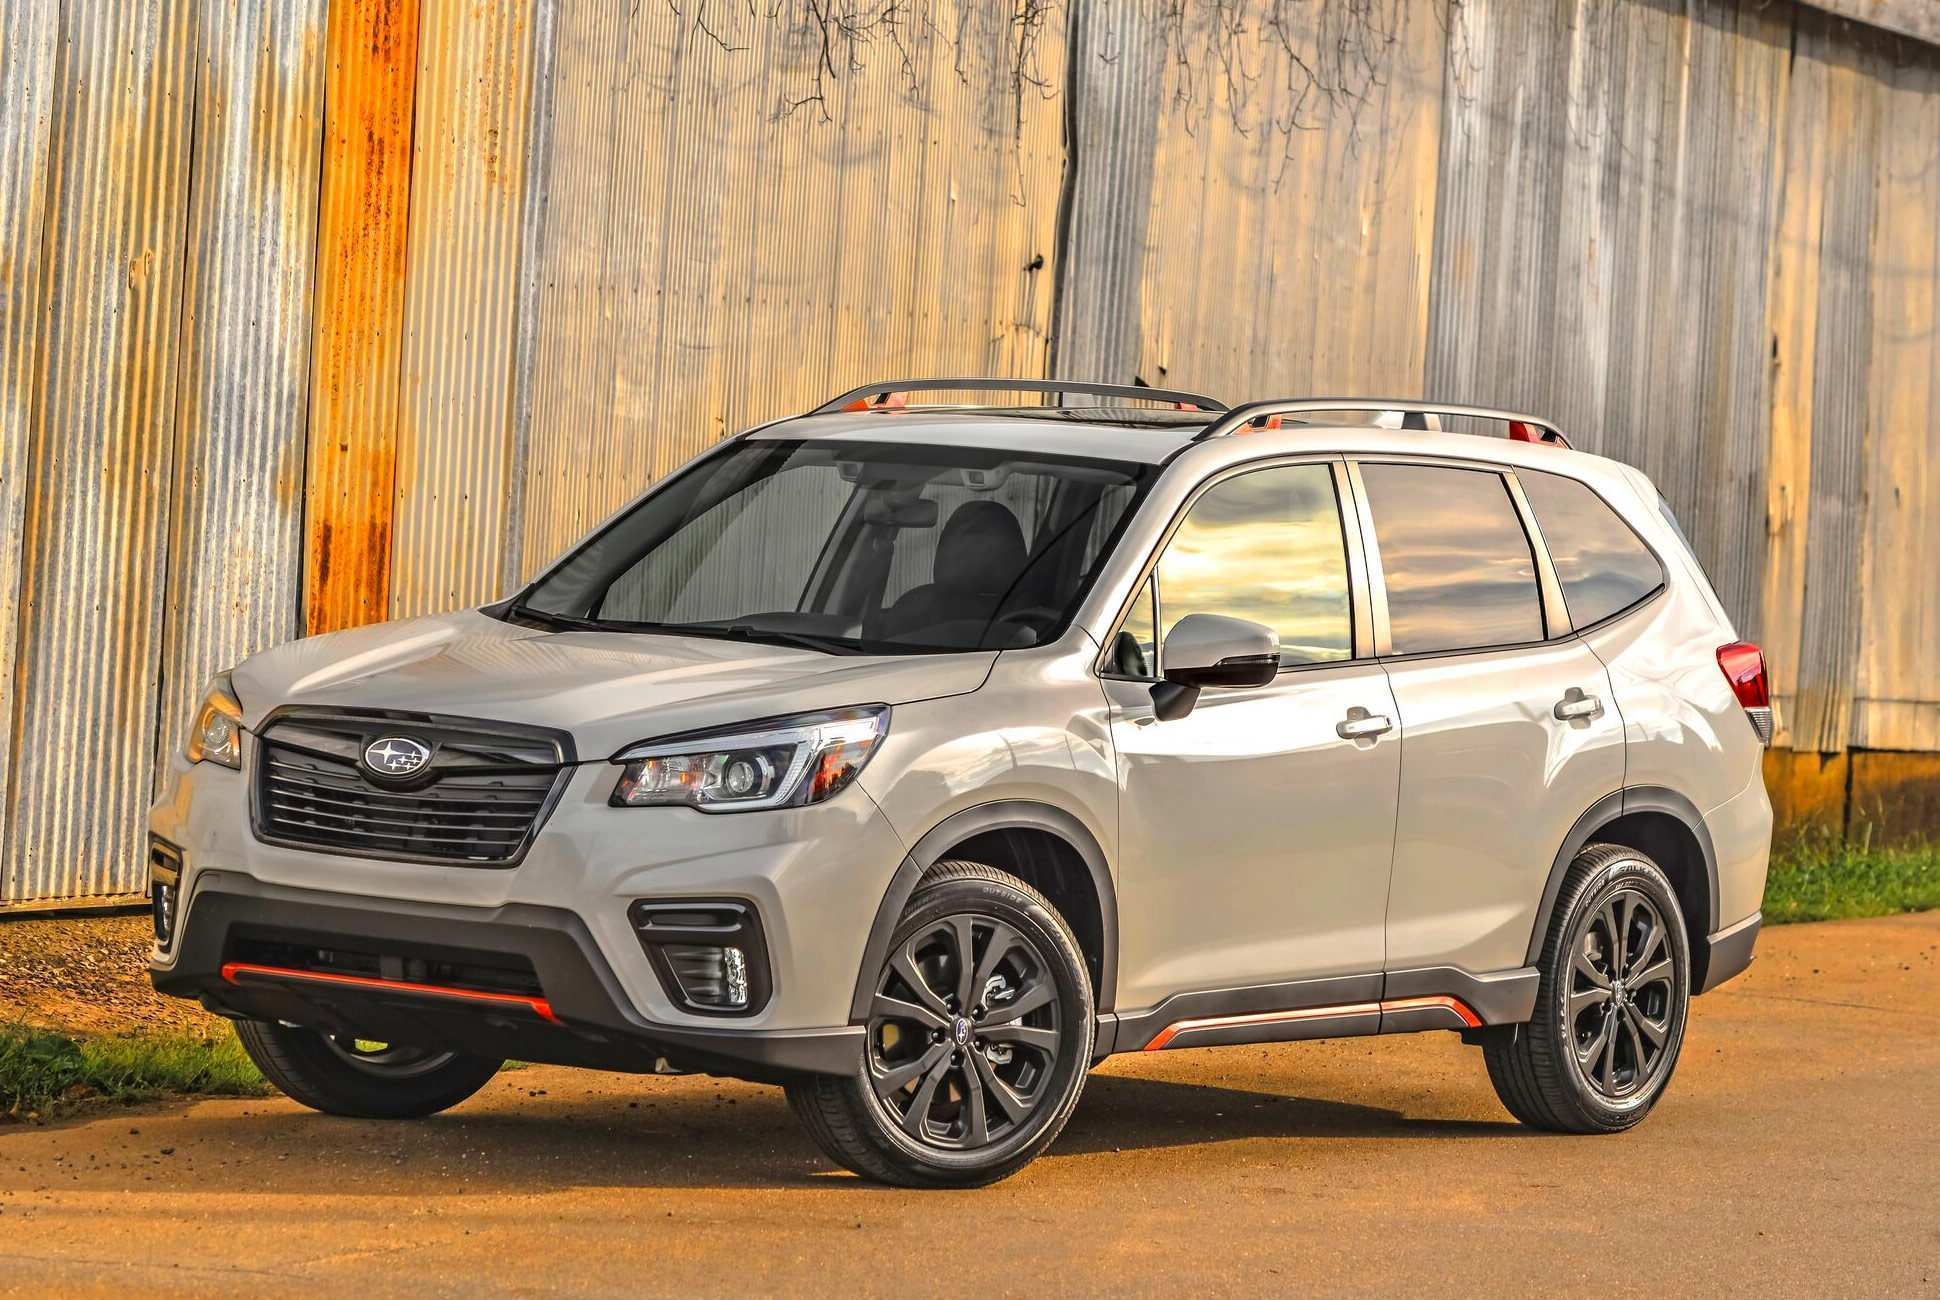 55 The Best 2019 Subaru Forester Release